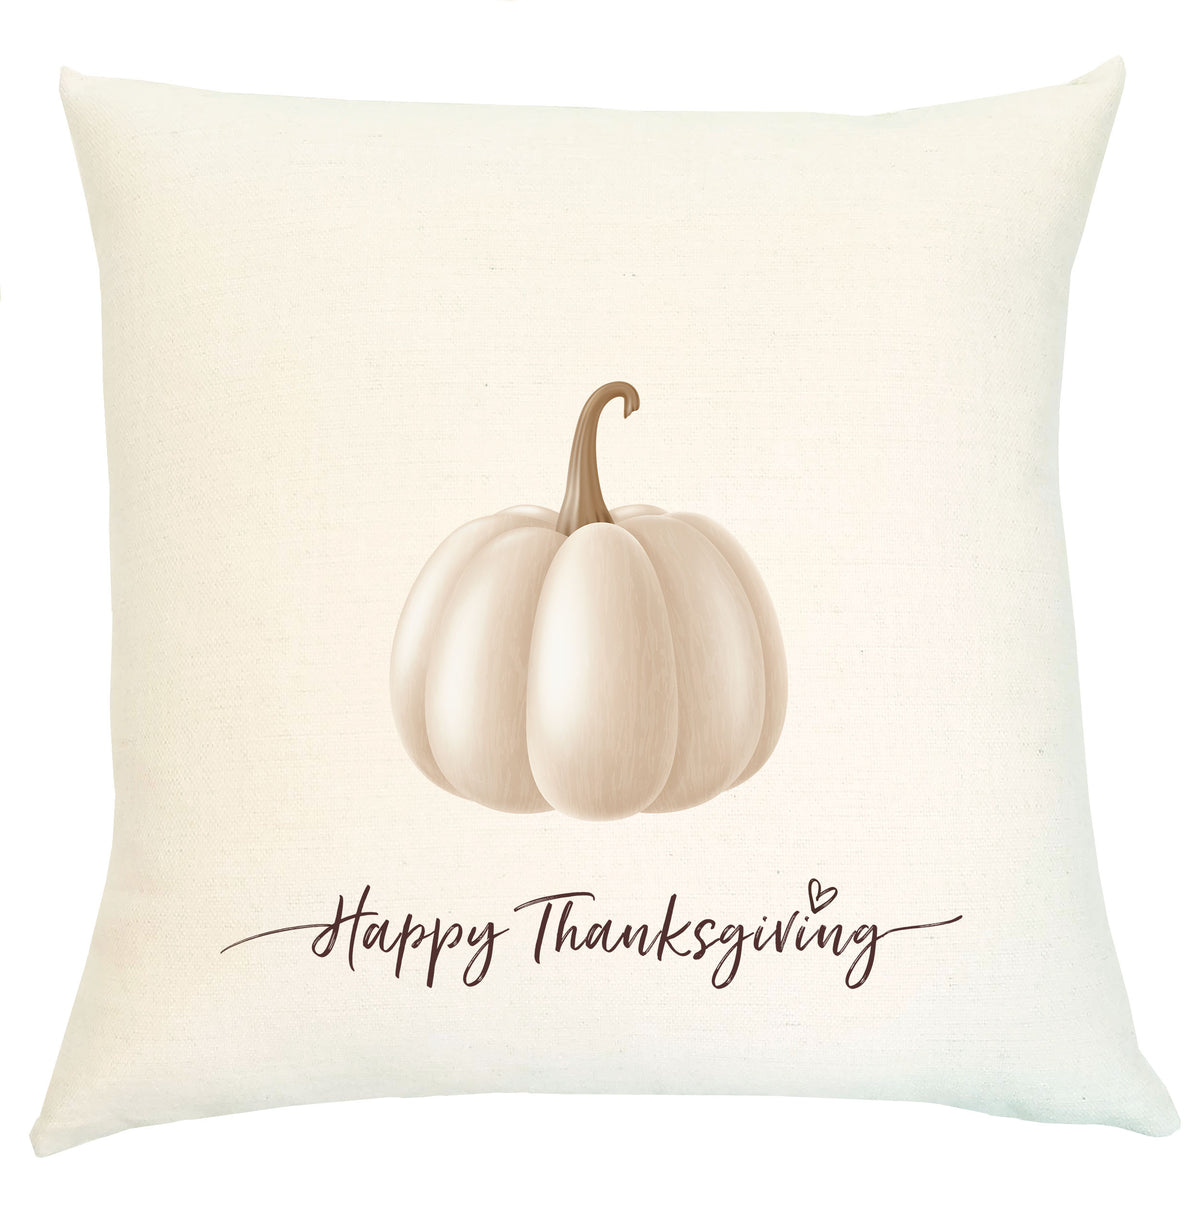 Pillow - White Pumpkin Happy Thanksgiving Pillow